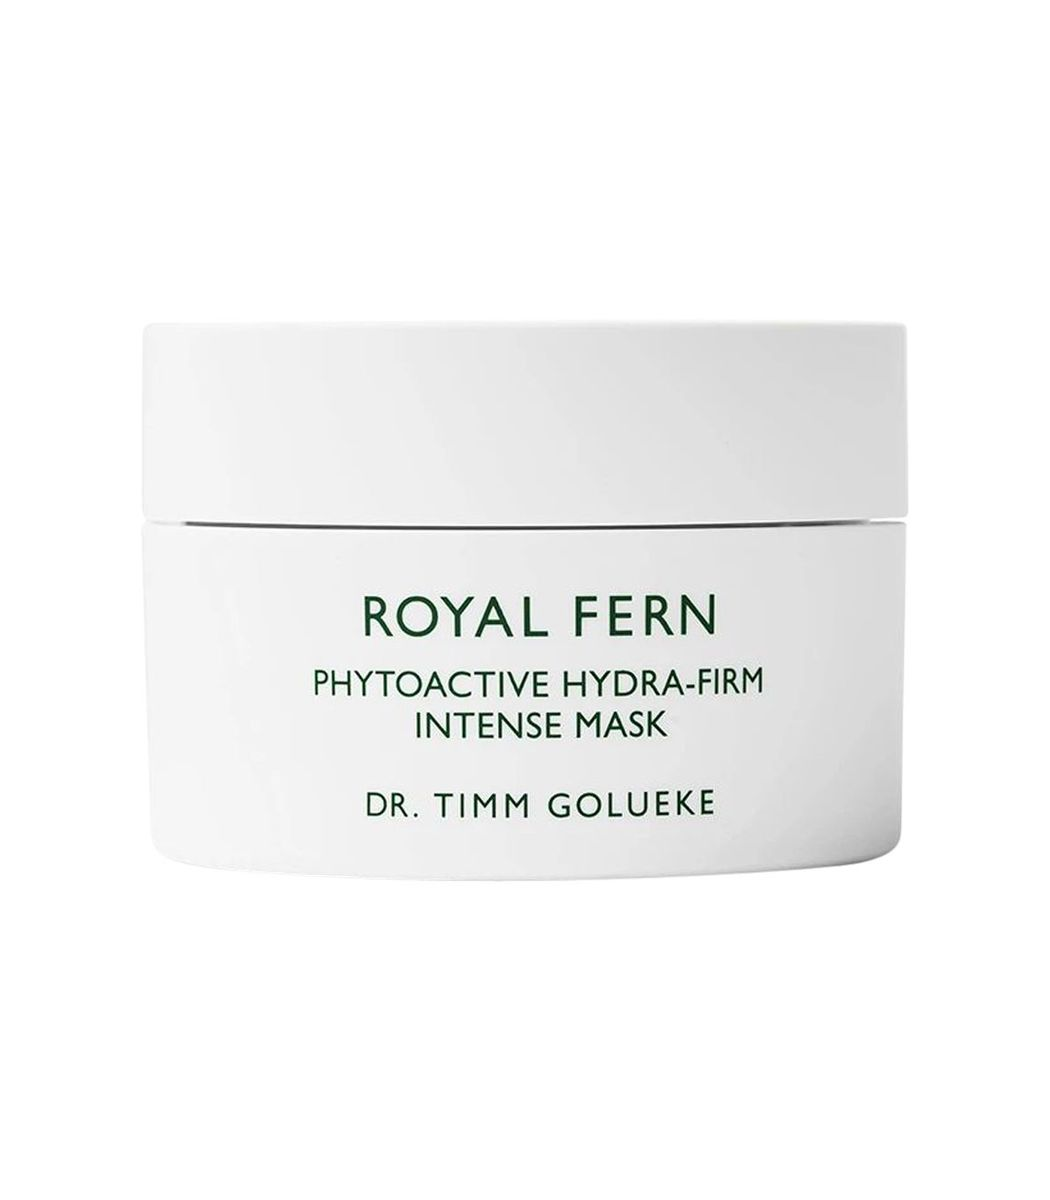 Royal Fern Hydra Firm Intense Mask, 50ml In White